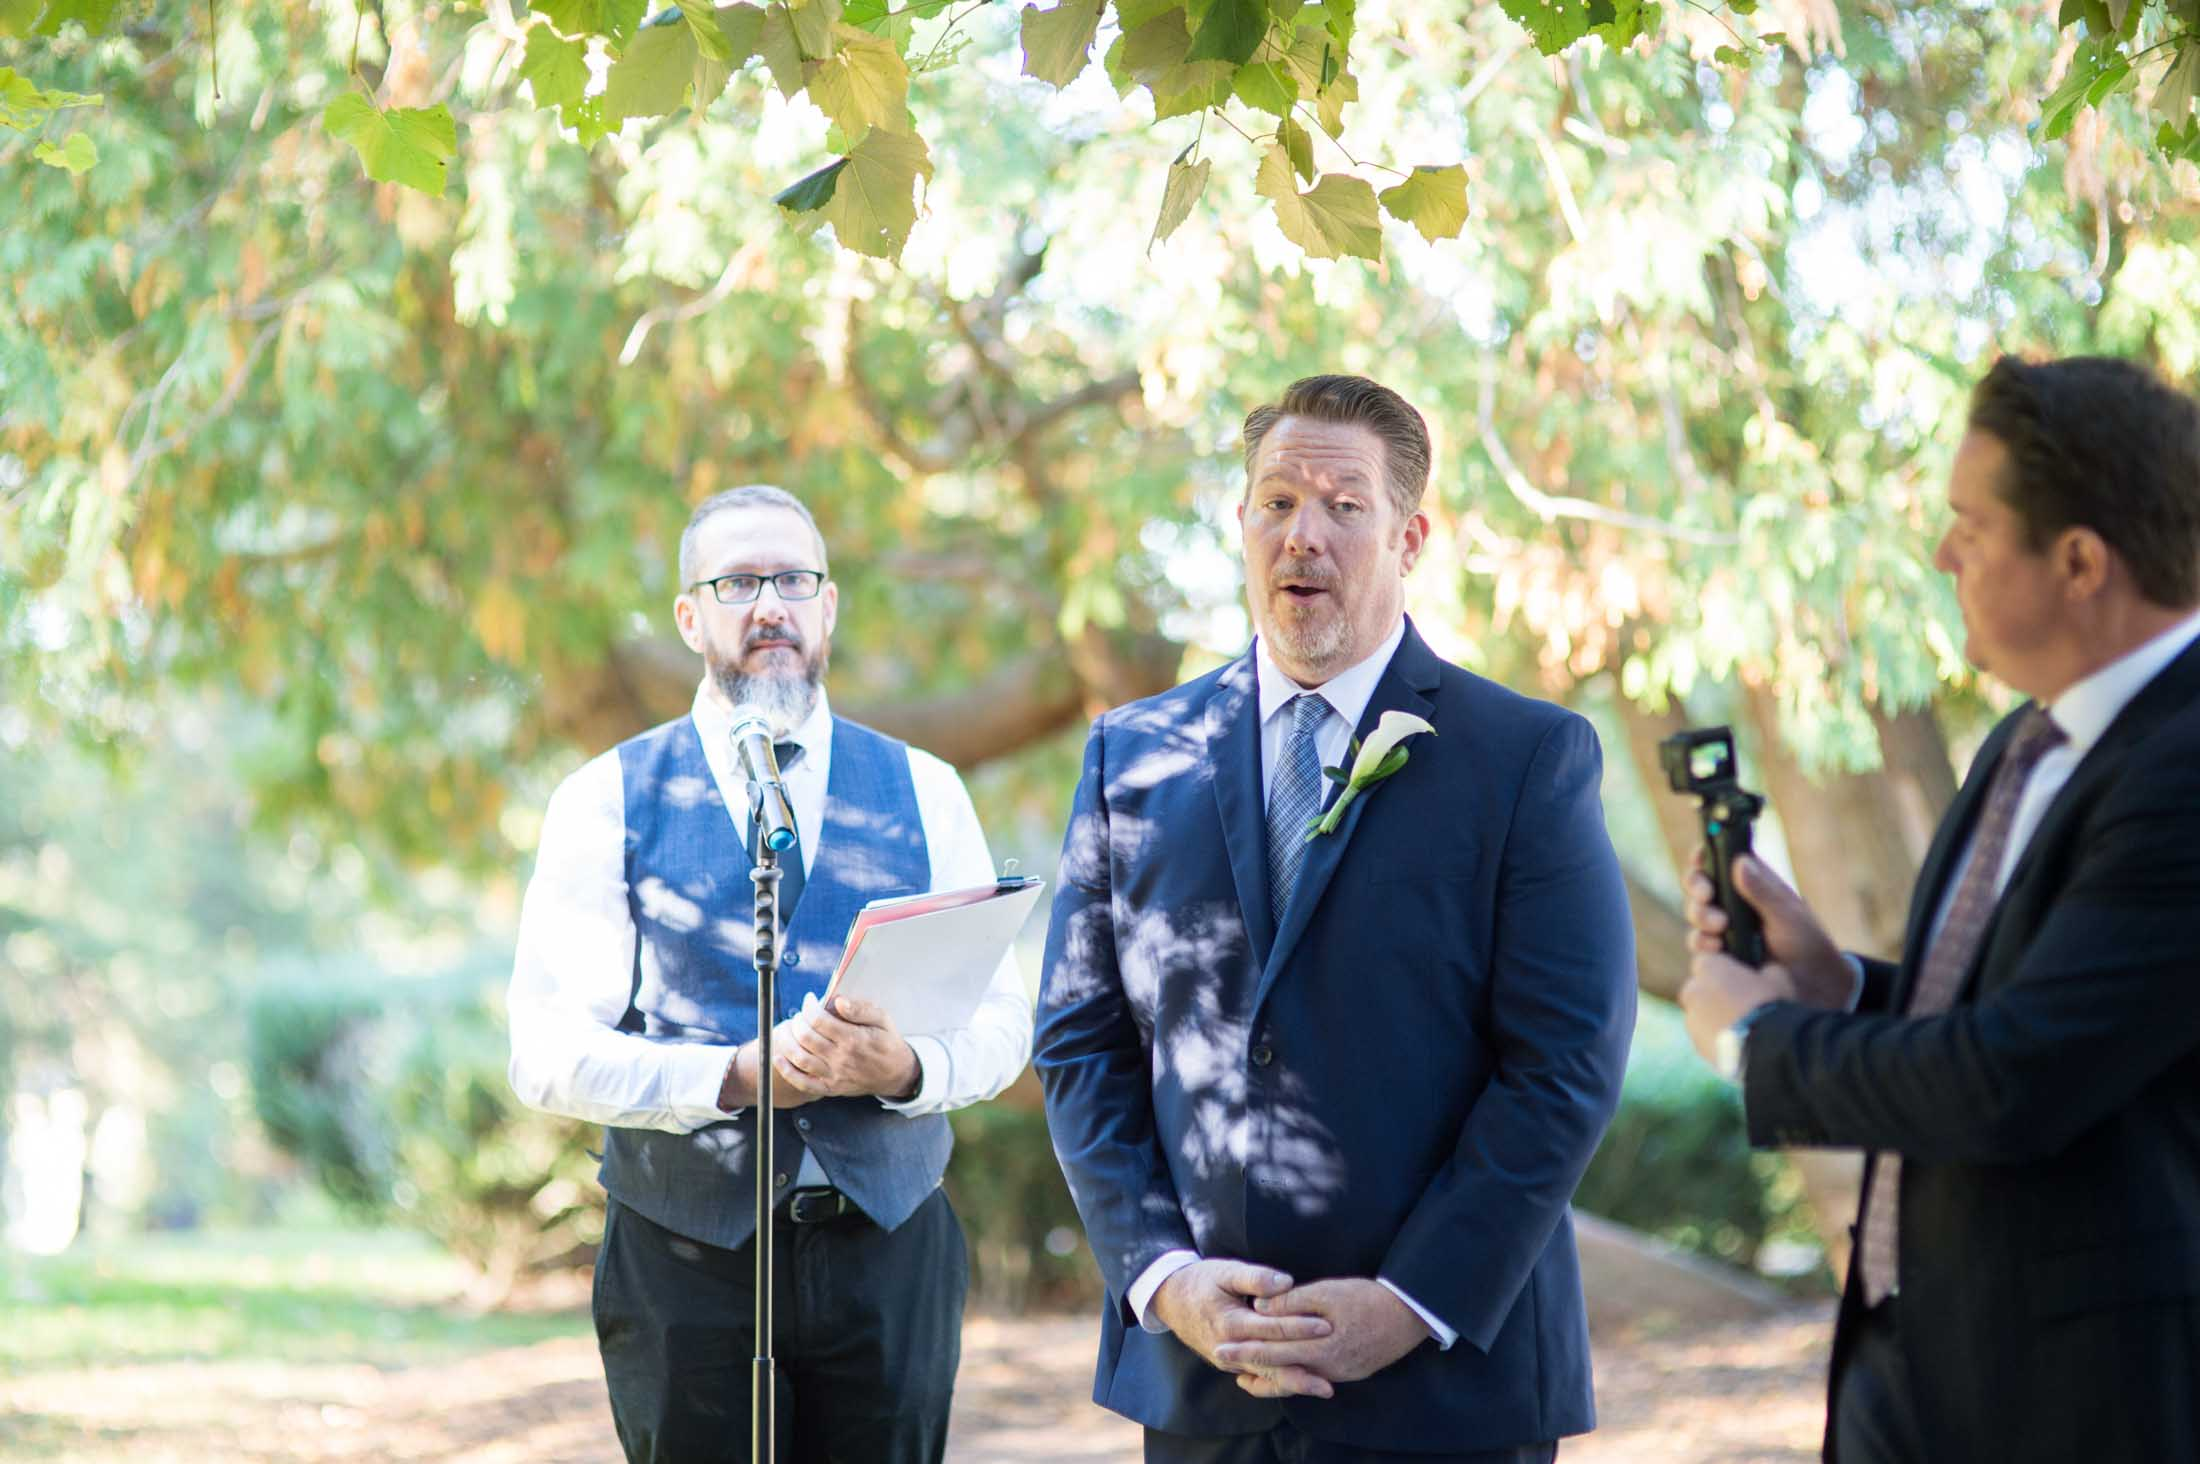 vineyard-style-wedding-ceremony-grooms-first-look